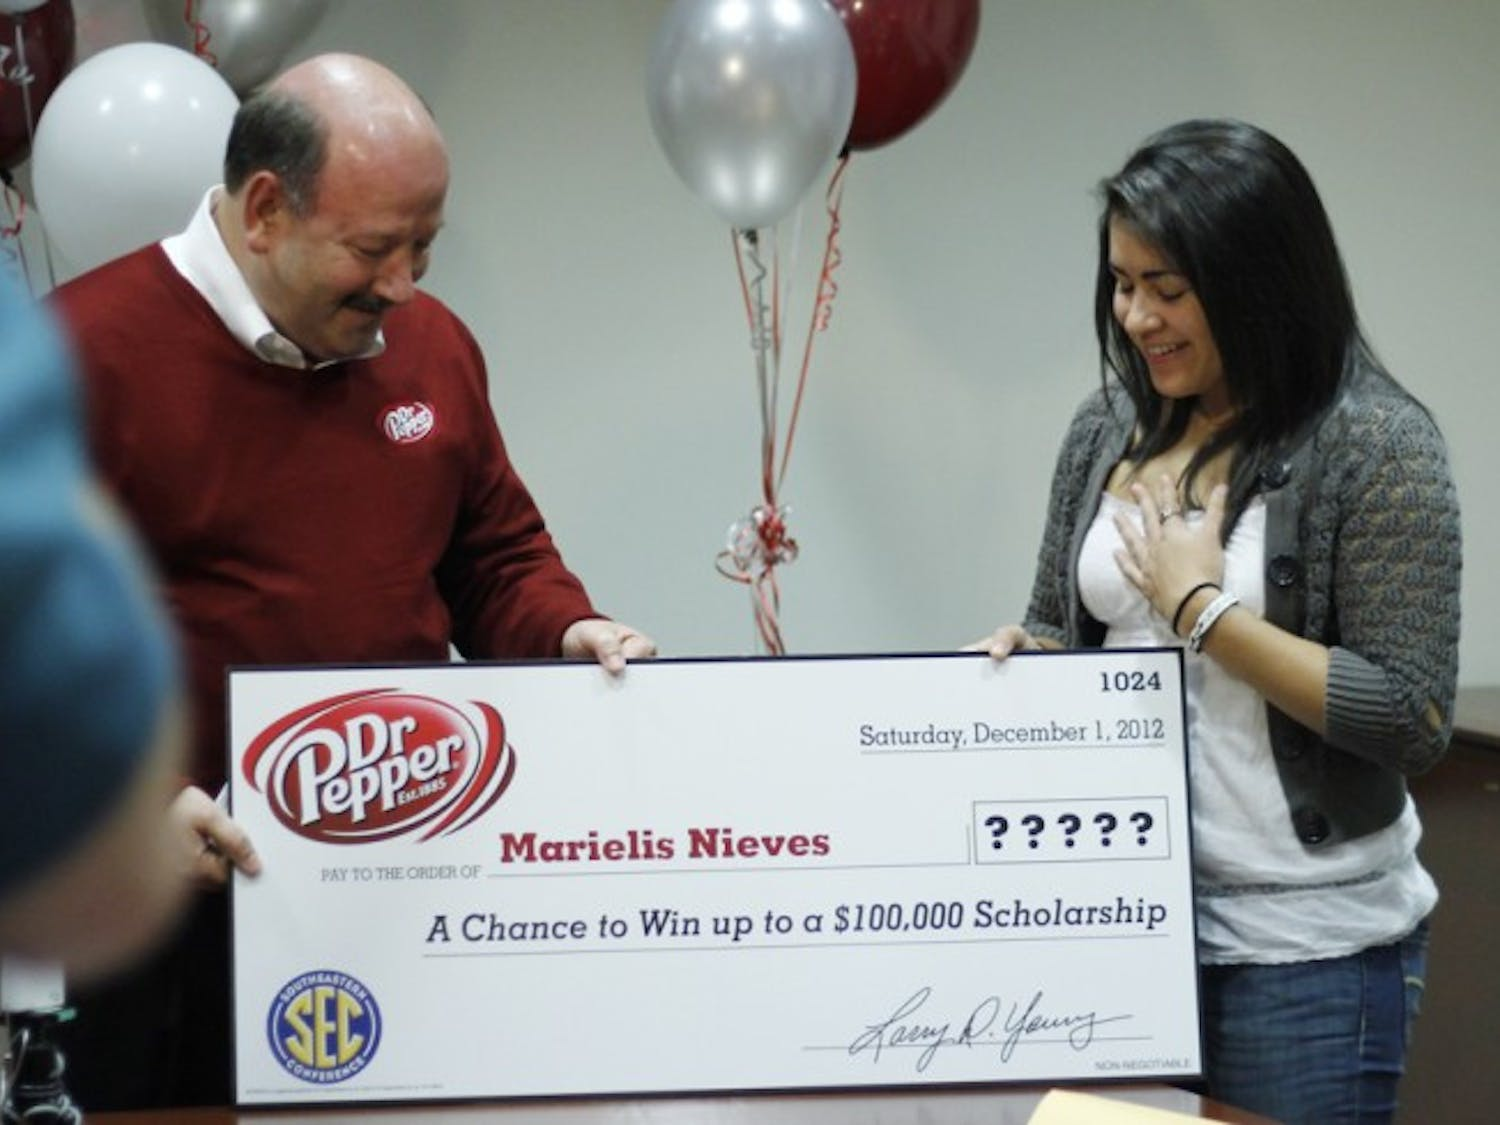 Chief marketing officer for Dr. Pepper Jim Trebilcock, left, presents Marielis Nieves, 18, of Saint Marys, Ga., with a check for $2,500 from her video entry in the Dr. Pepper Tuition Giveaway.